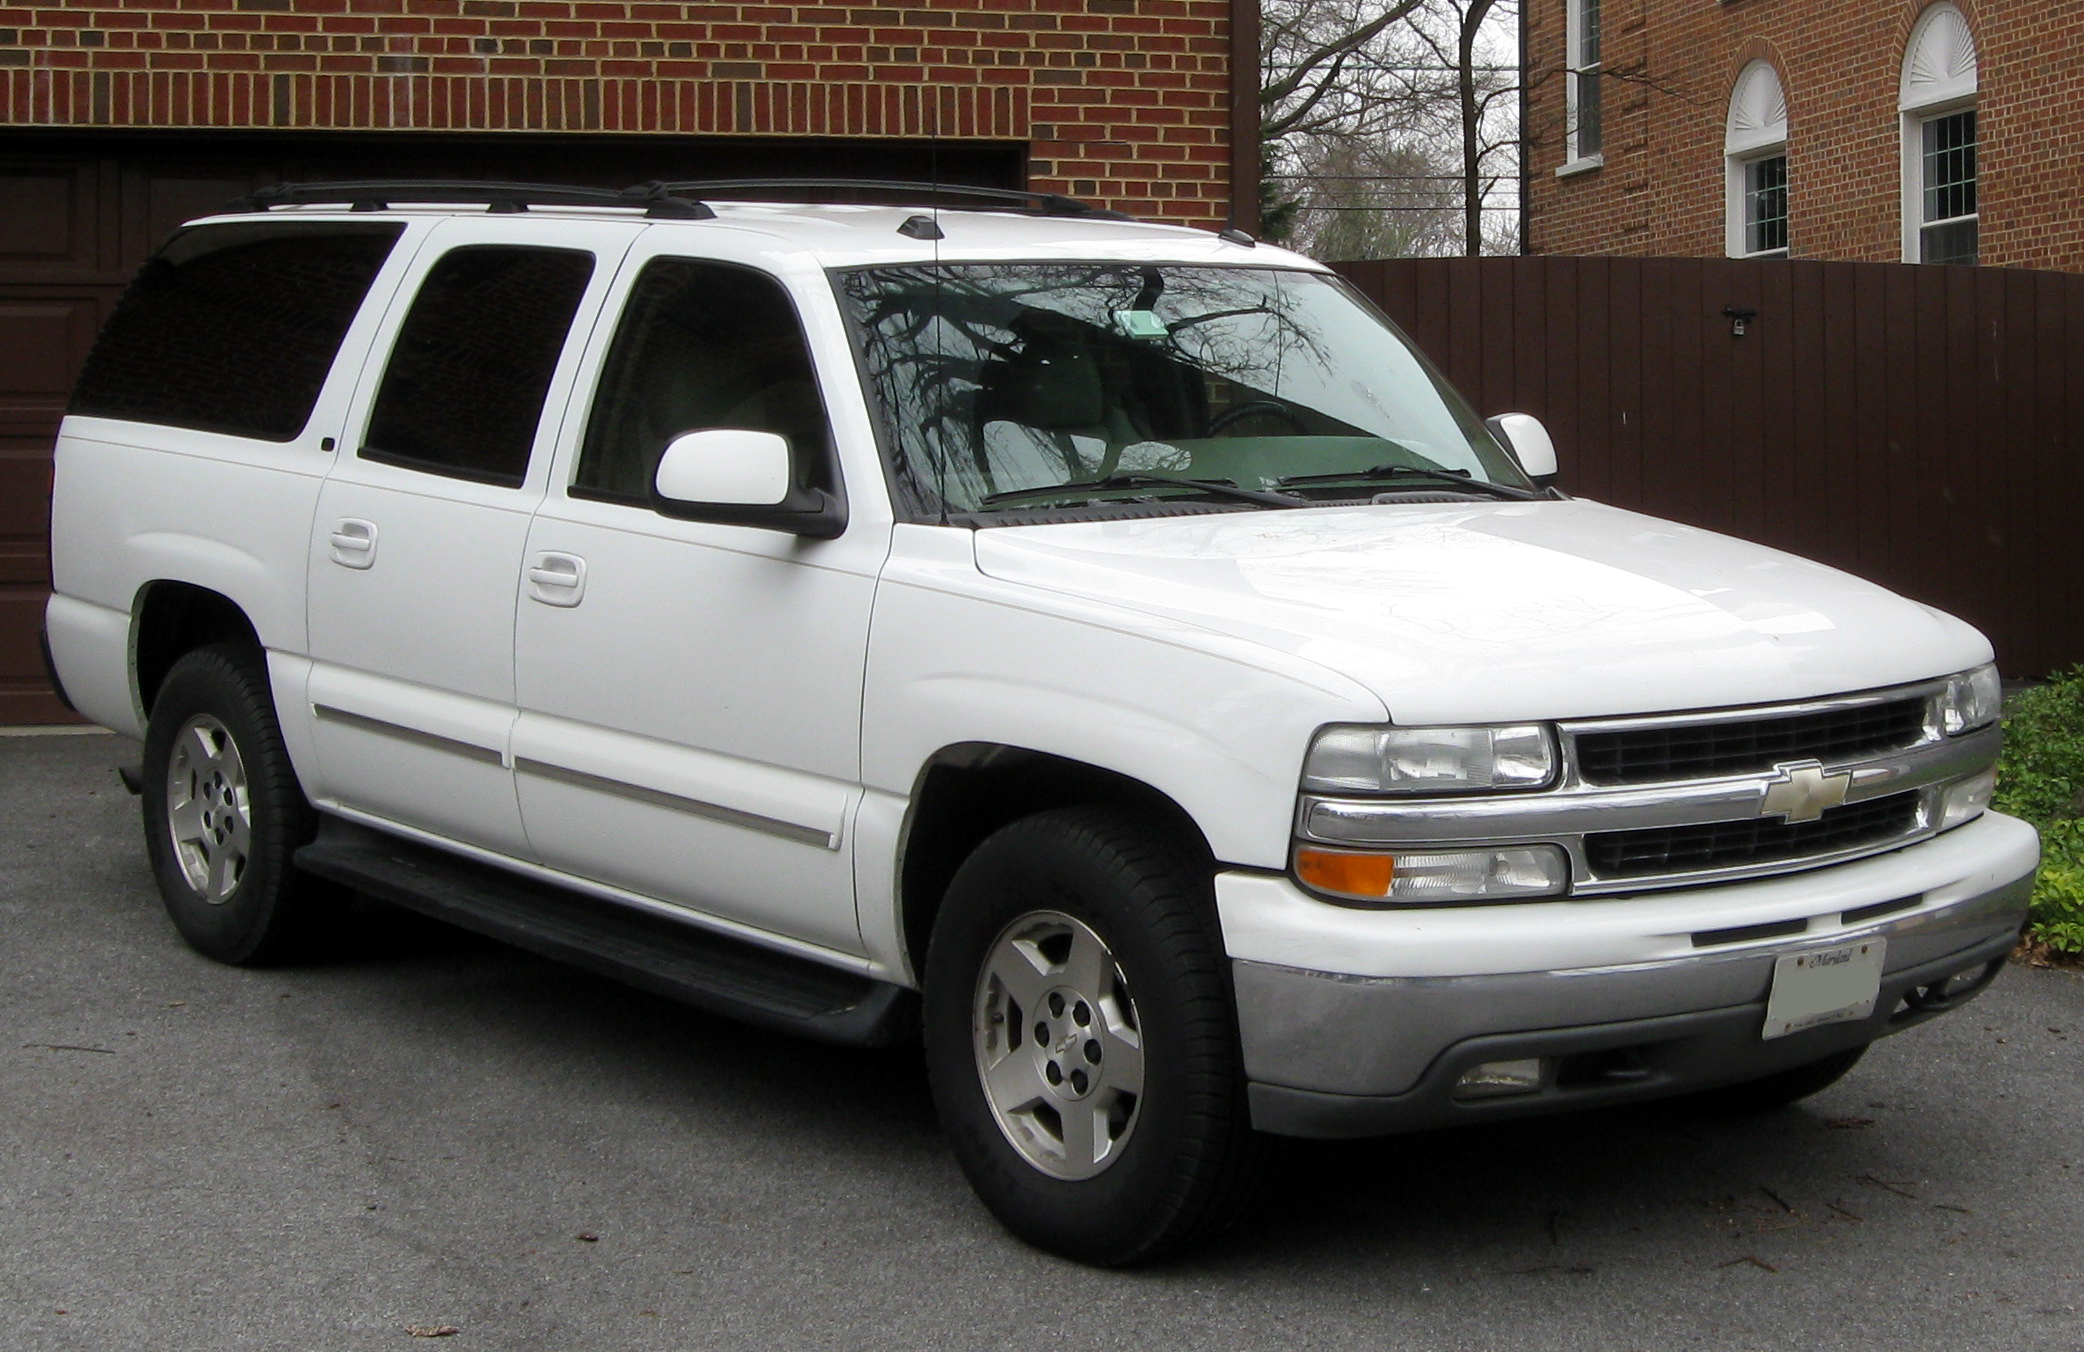 2004 Chevrolet Suburban gmt800  pictures information and specs